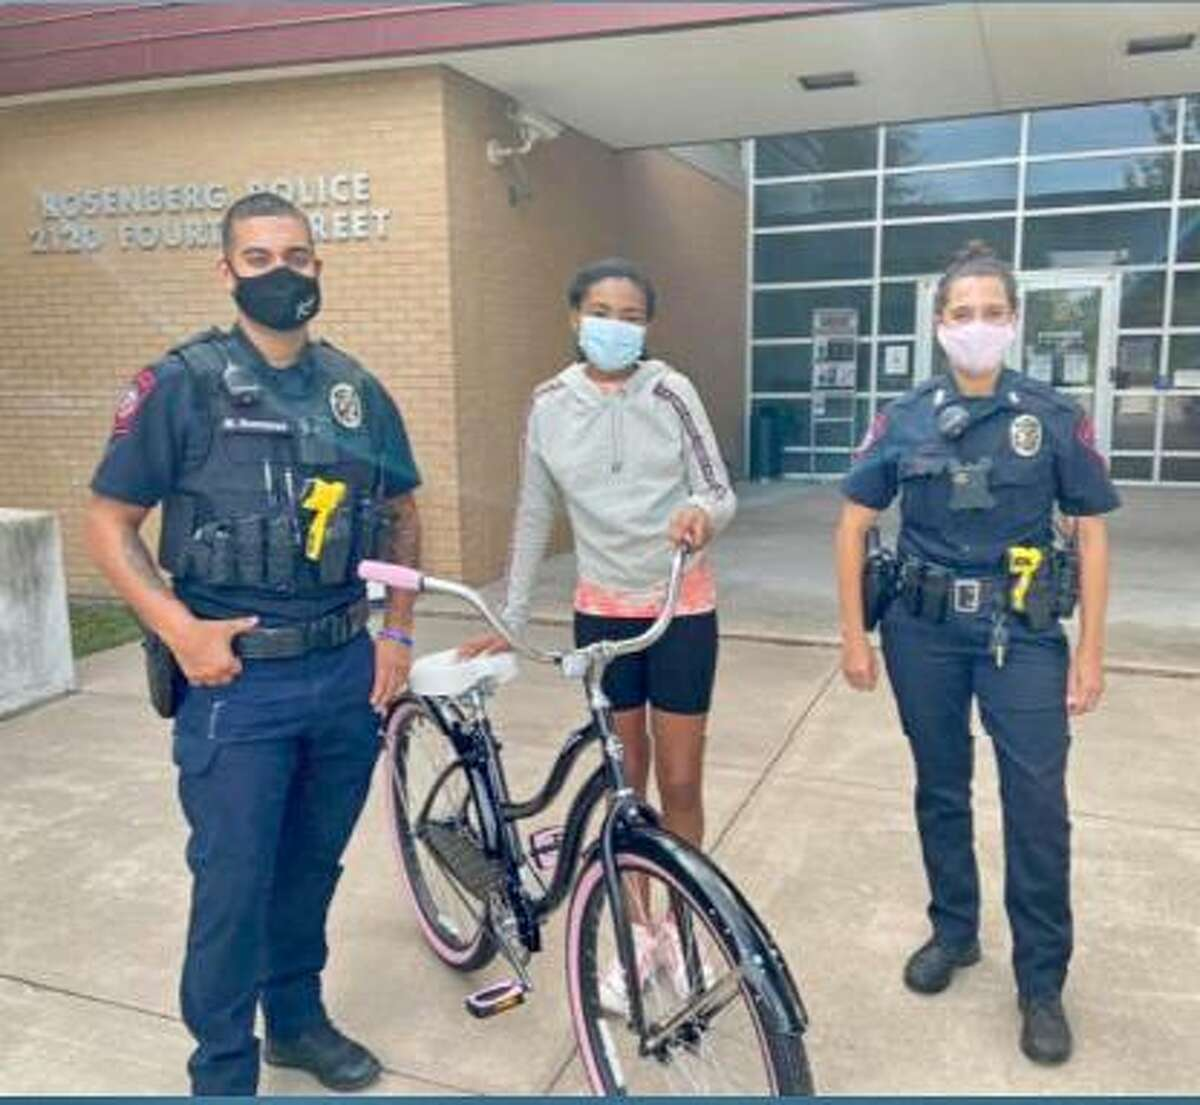 During September, the Rosenberg's Police Department's Community Relations Division officers held a recruitment event, met with area students to help with a school project, met with area pastors to talk about community engagement and donated a new bicycle for a contest event, officials said during an update to the Rosenberg City Council on Oct. 27.